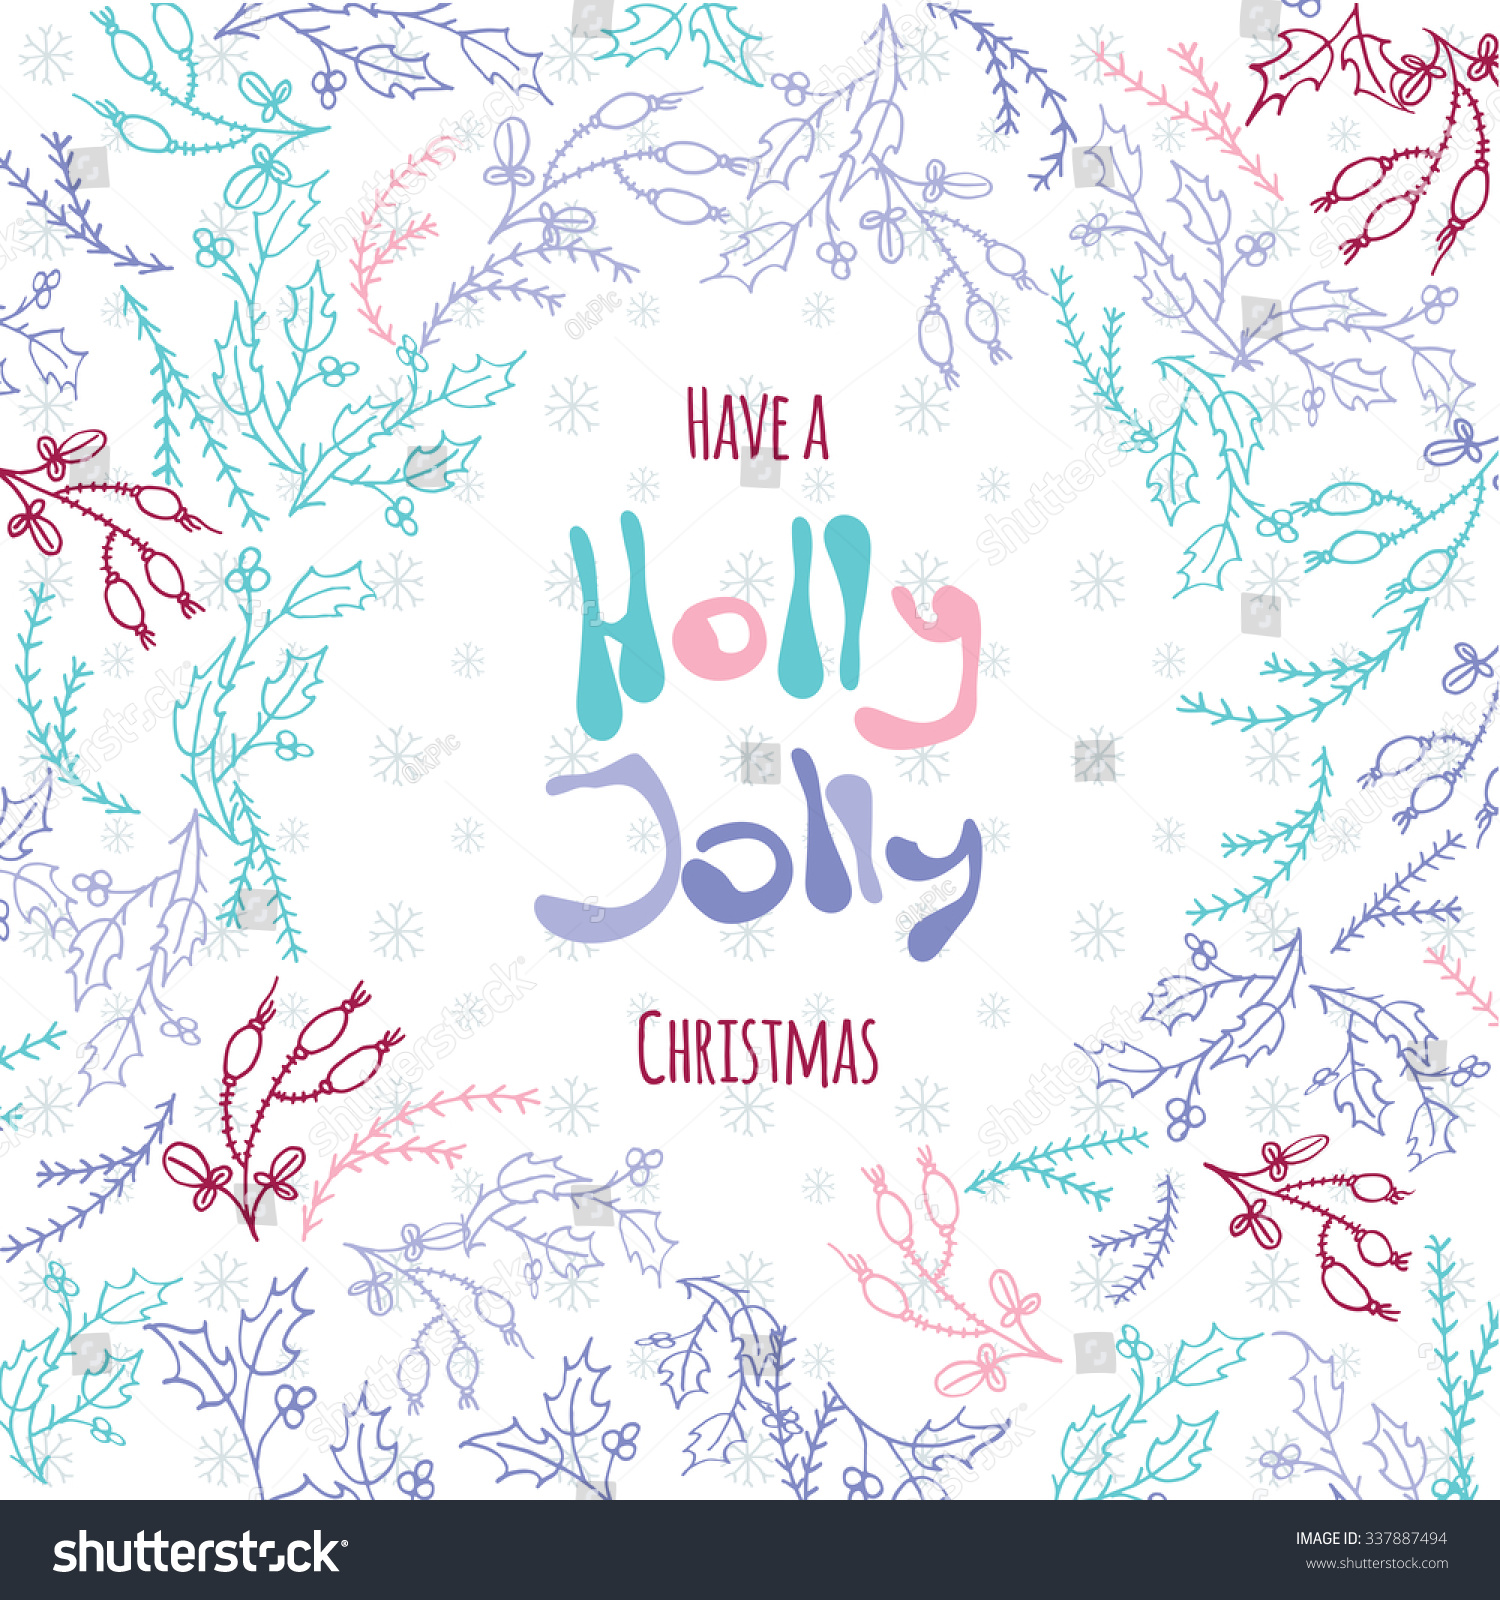 have holly jolly christmas post card stock vector  have a holly jolly christmas post card background pastel poster template stylish greeting